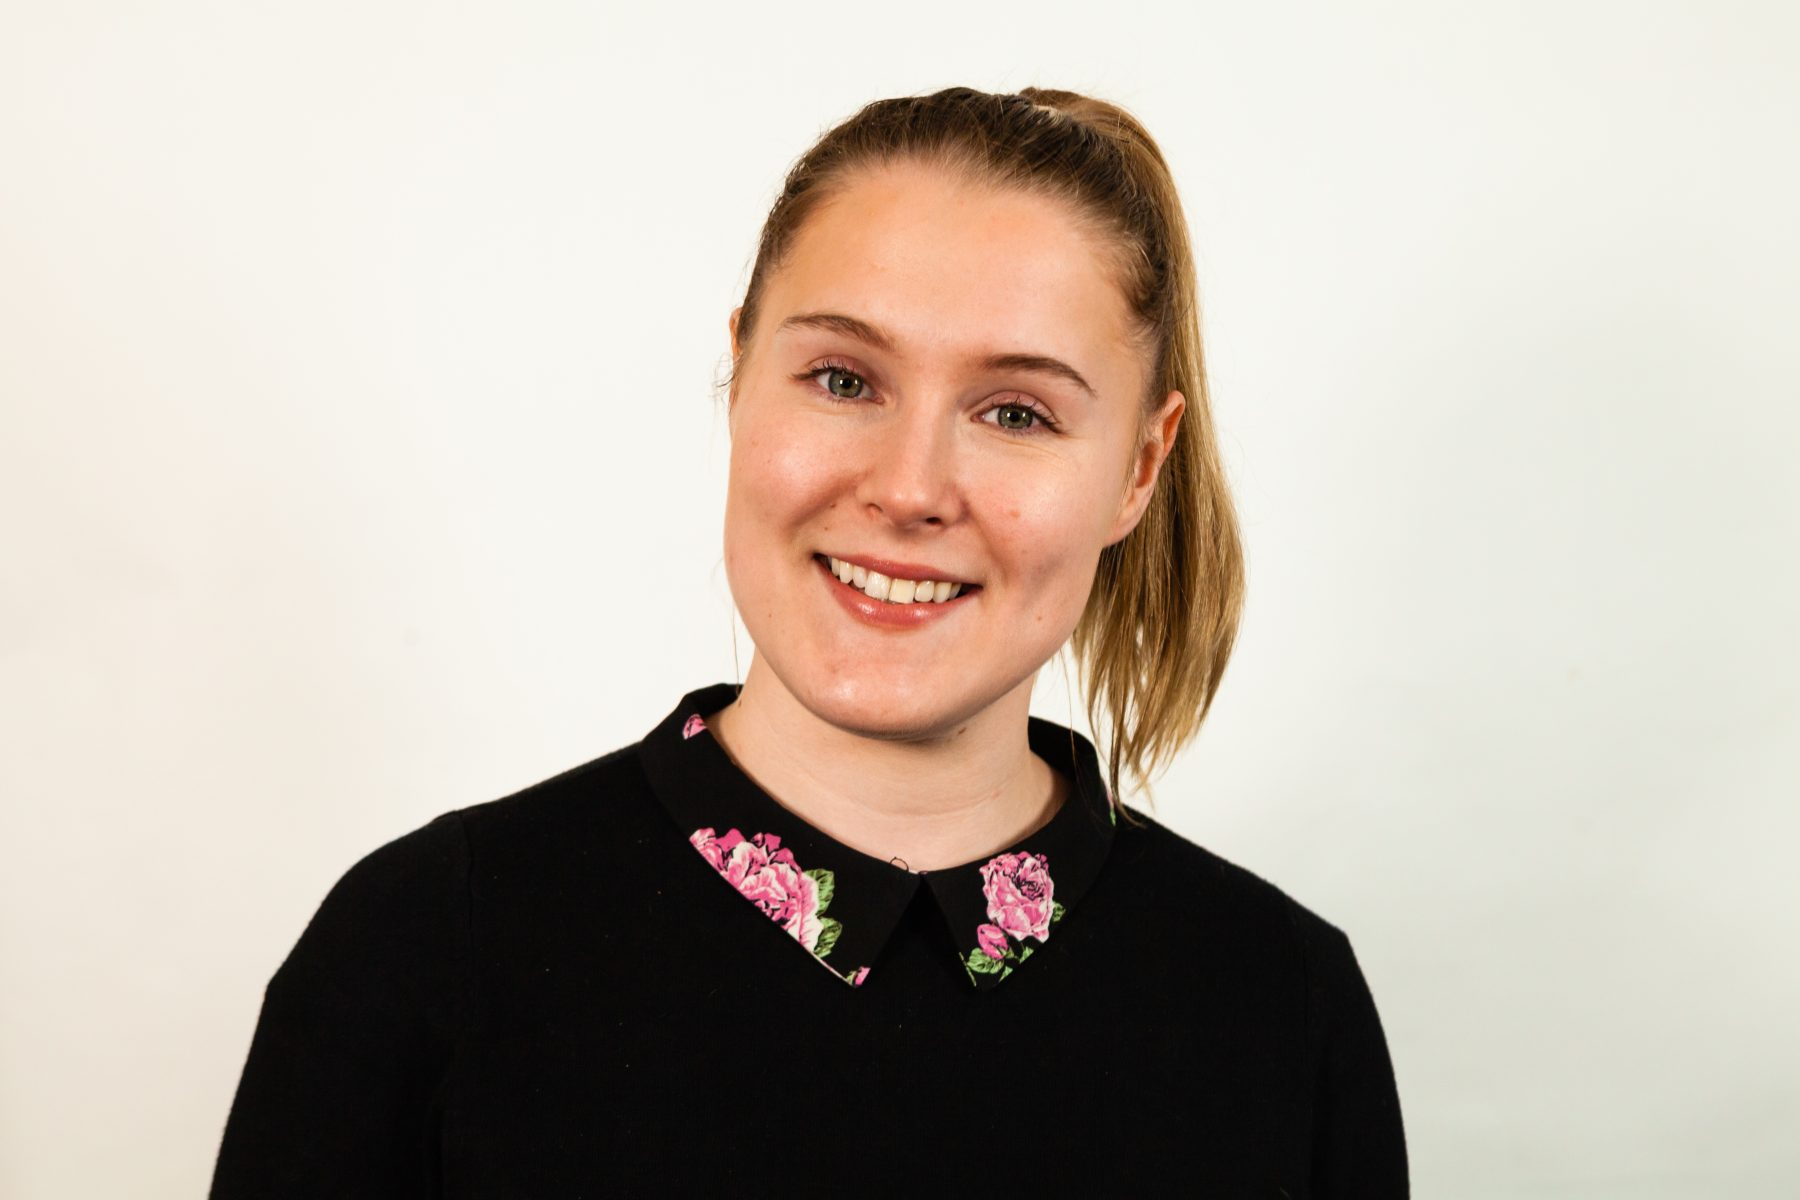 Katie Hogg is a member of the award-winning PR team at Holyrood PR agency in Edinburgh, Scotland